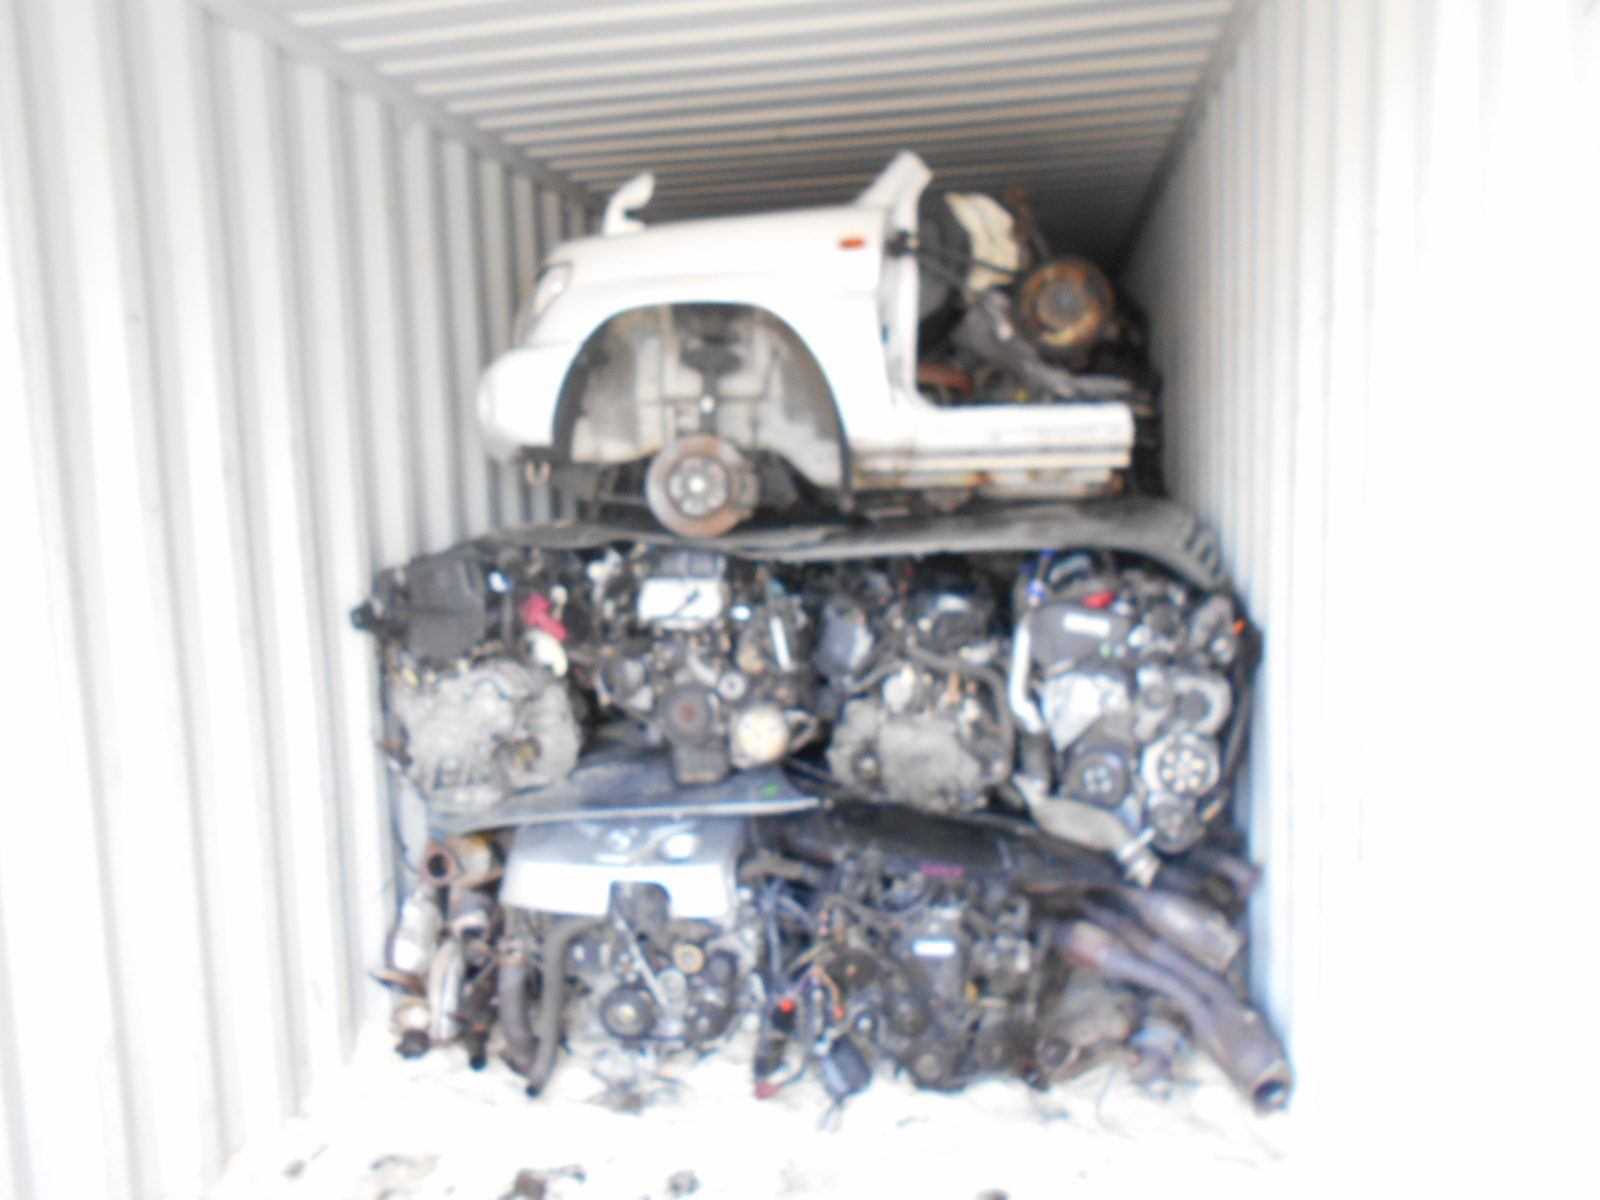 used parts japan,japan used car parts,used car parts,中古車部品輸出,中古自動車部